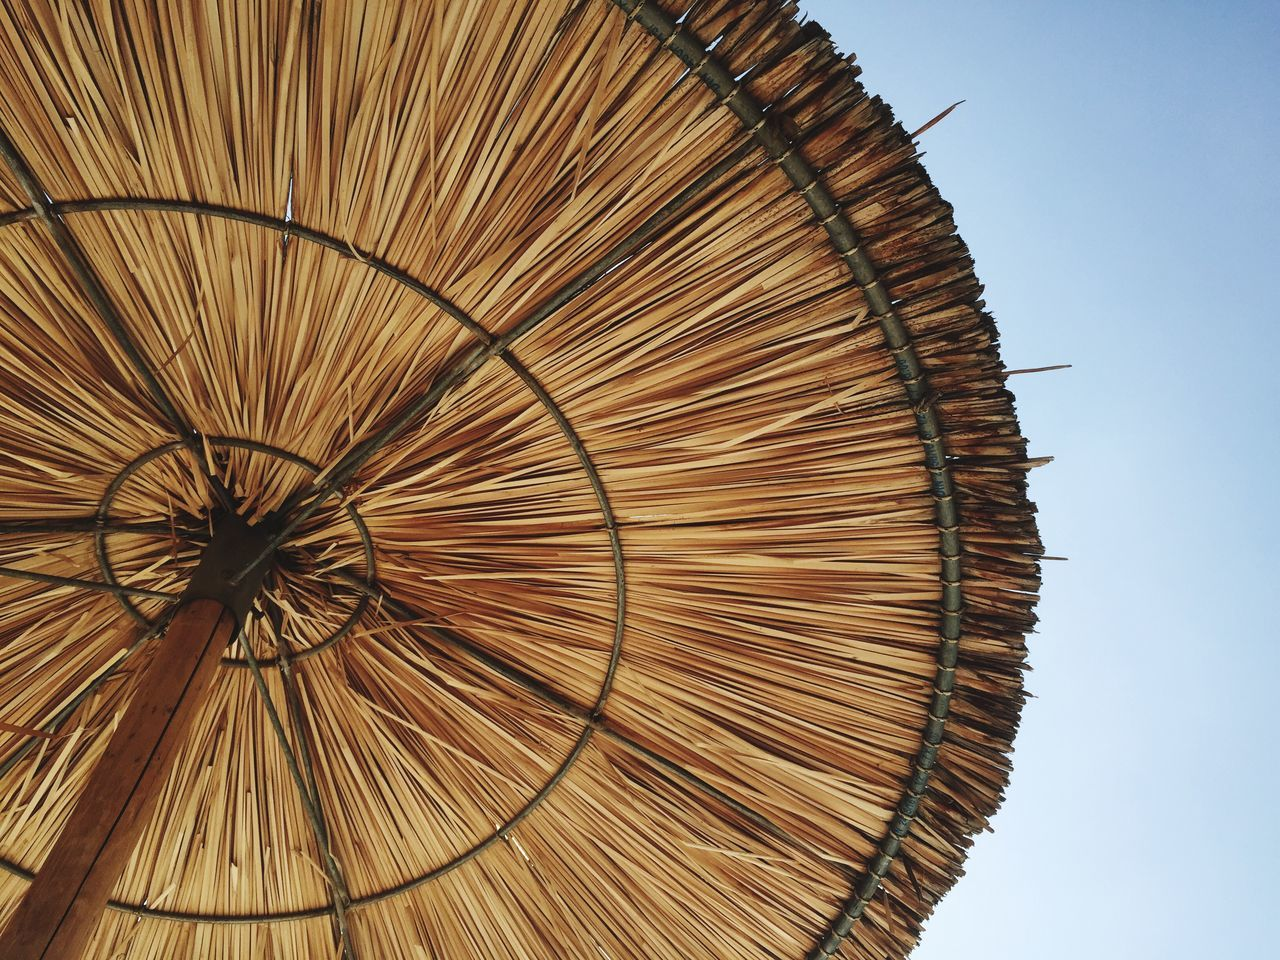 Low Angle View Of Thatched Roof Parasol Against Sky